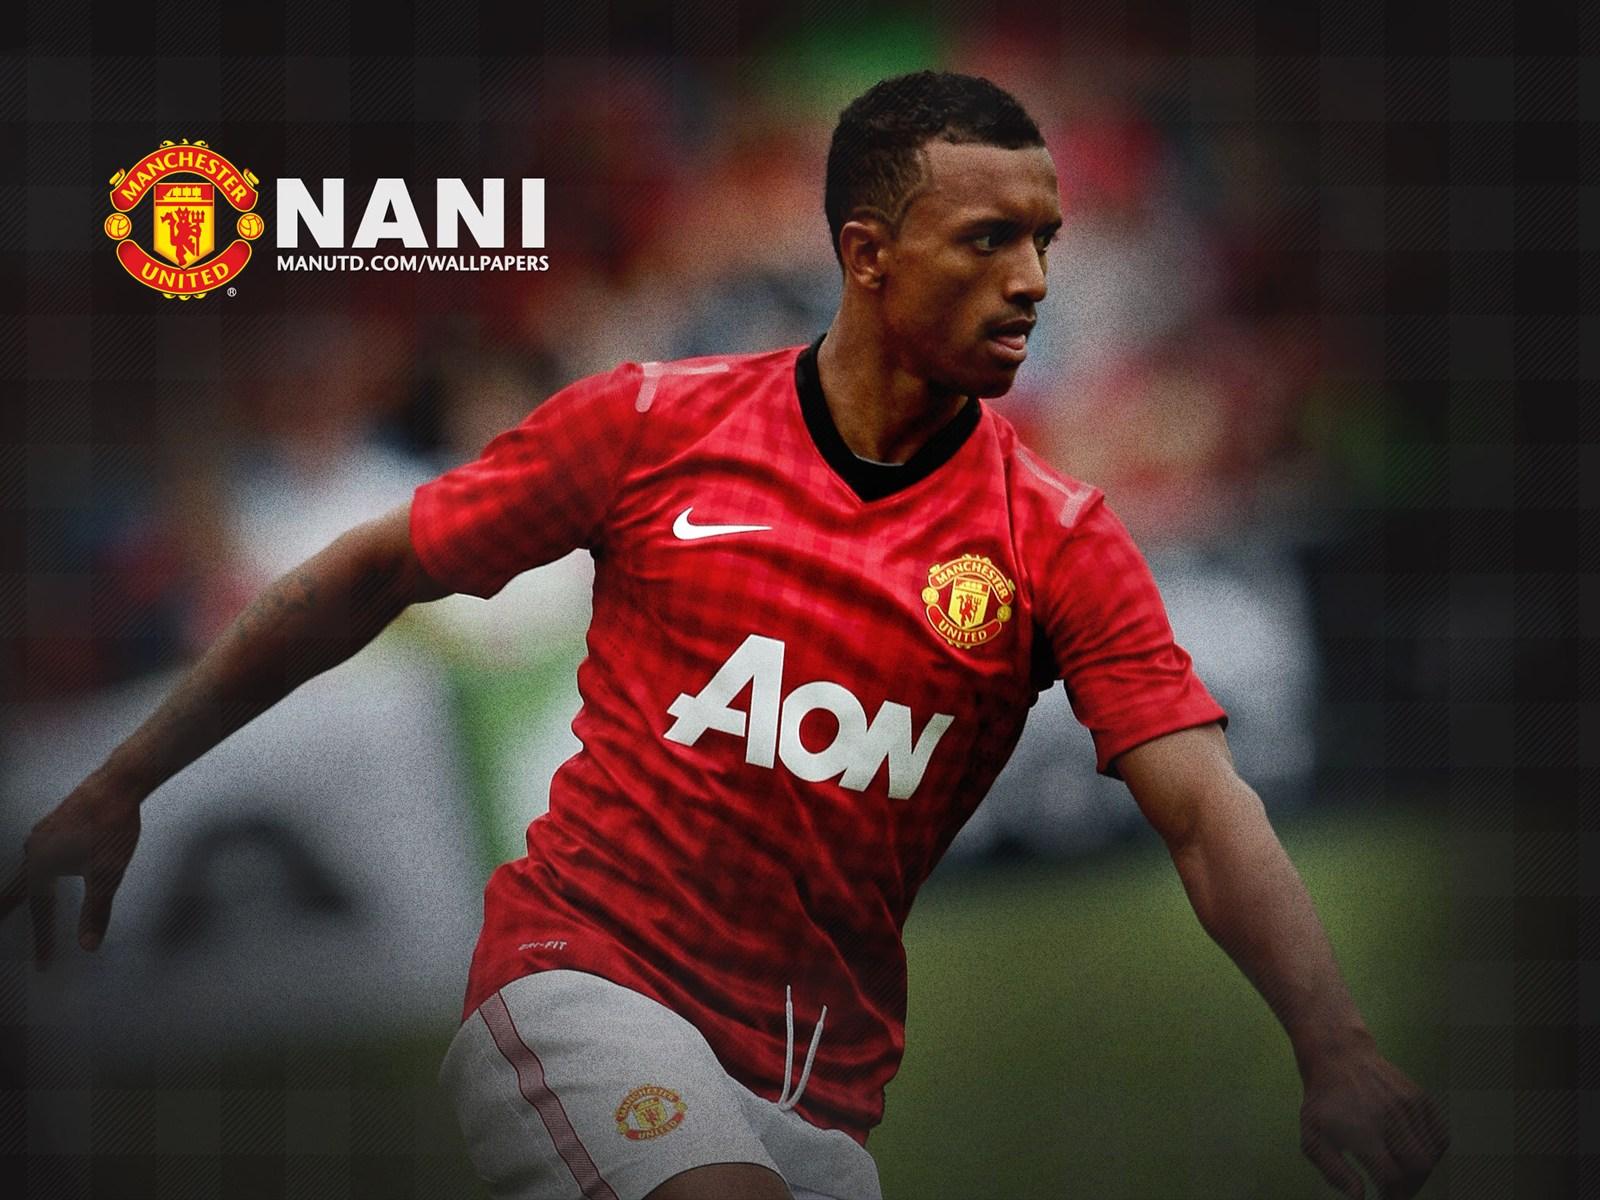 Nani pictures wallpaper | Manchester United Wallpapers